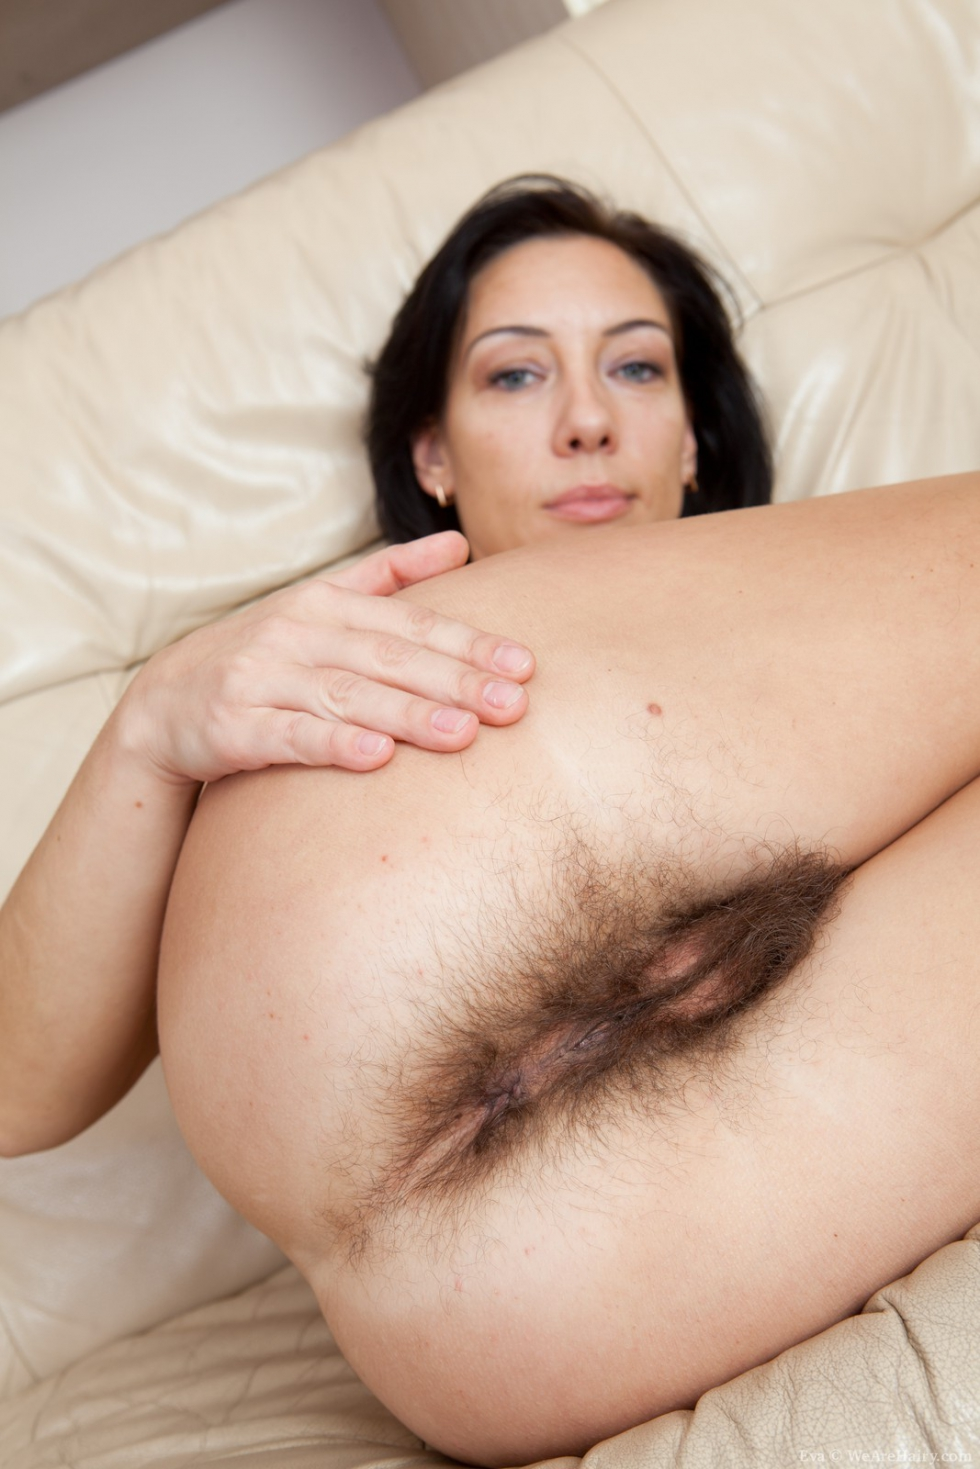 Wearehairy Eva Hairy Girl Spreads Her All Natural Muff